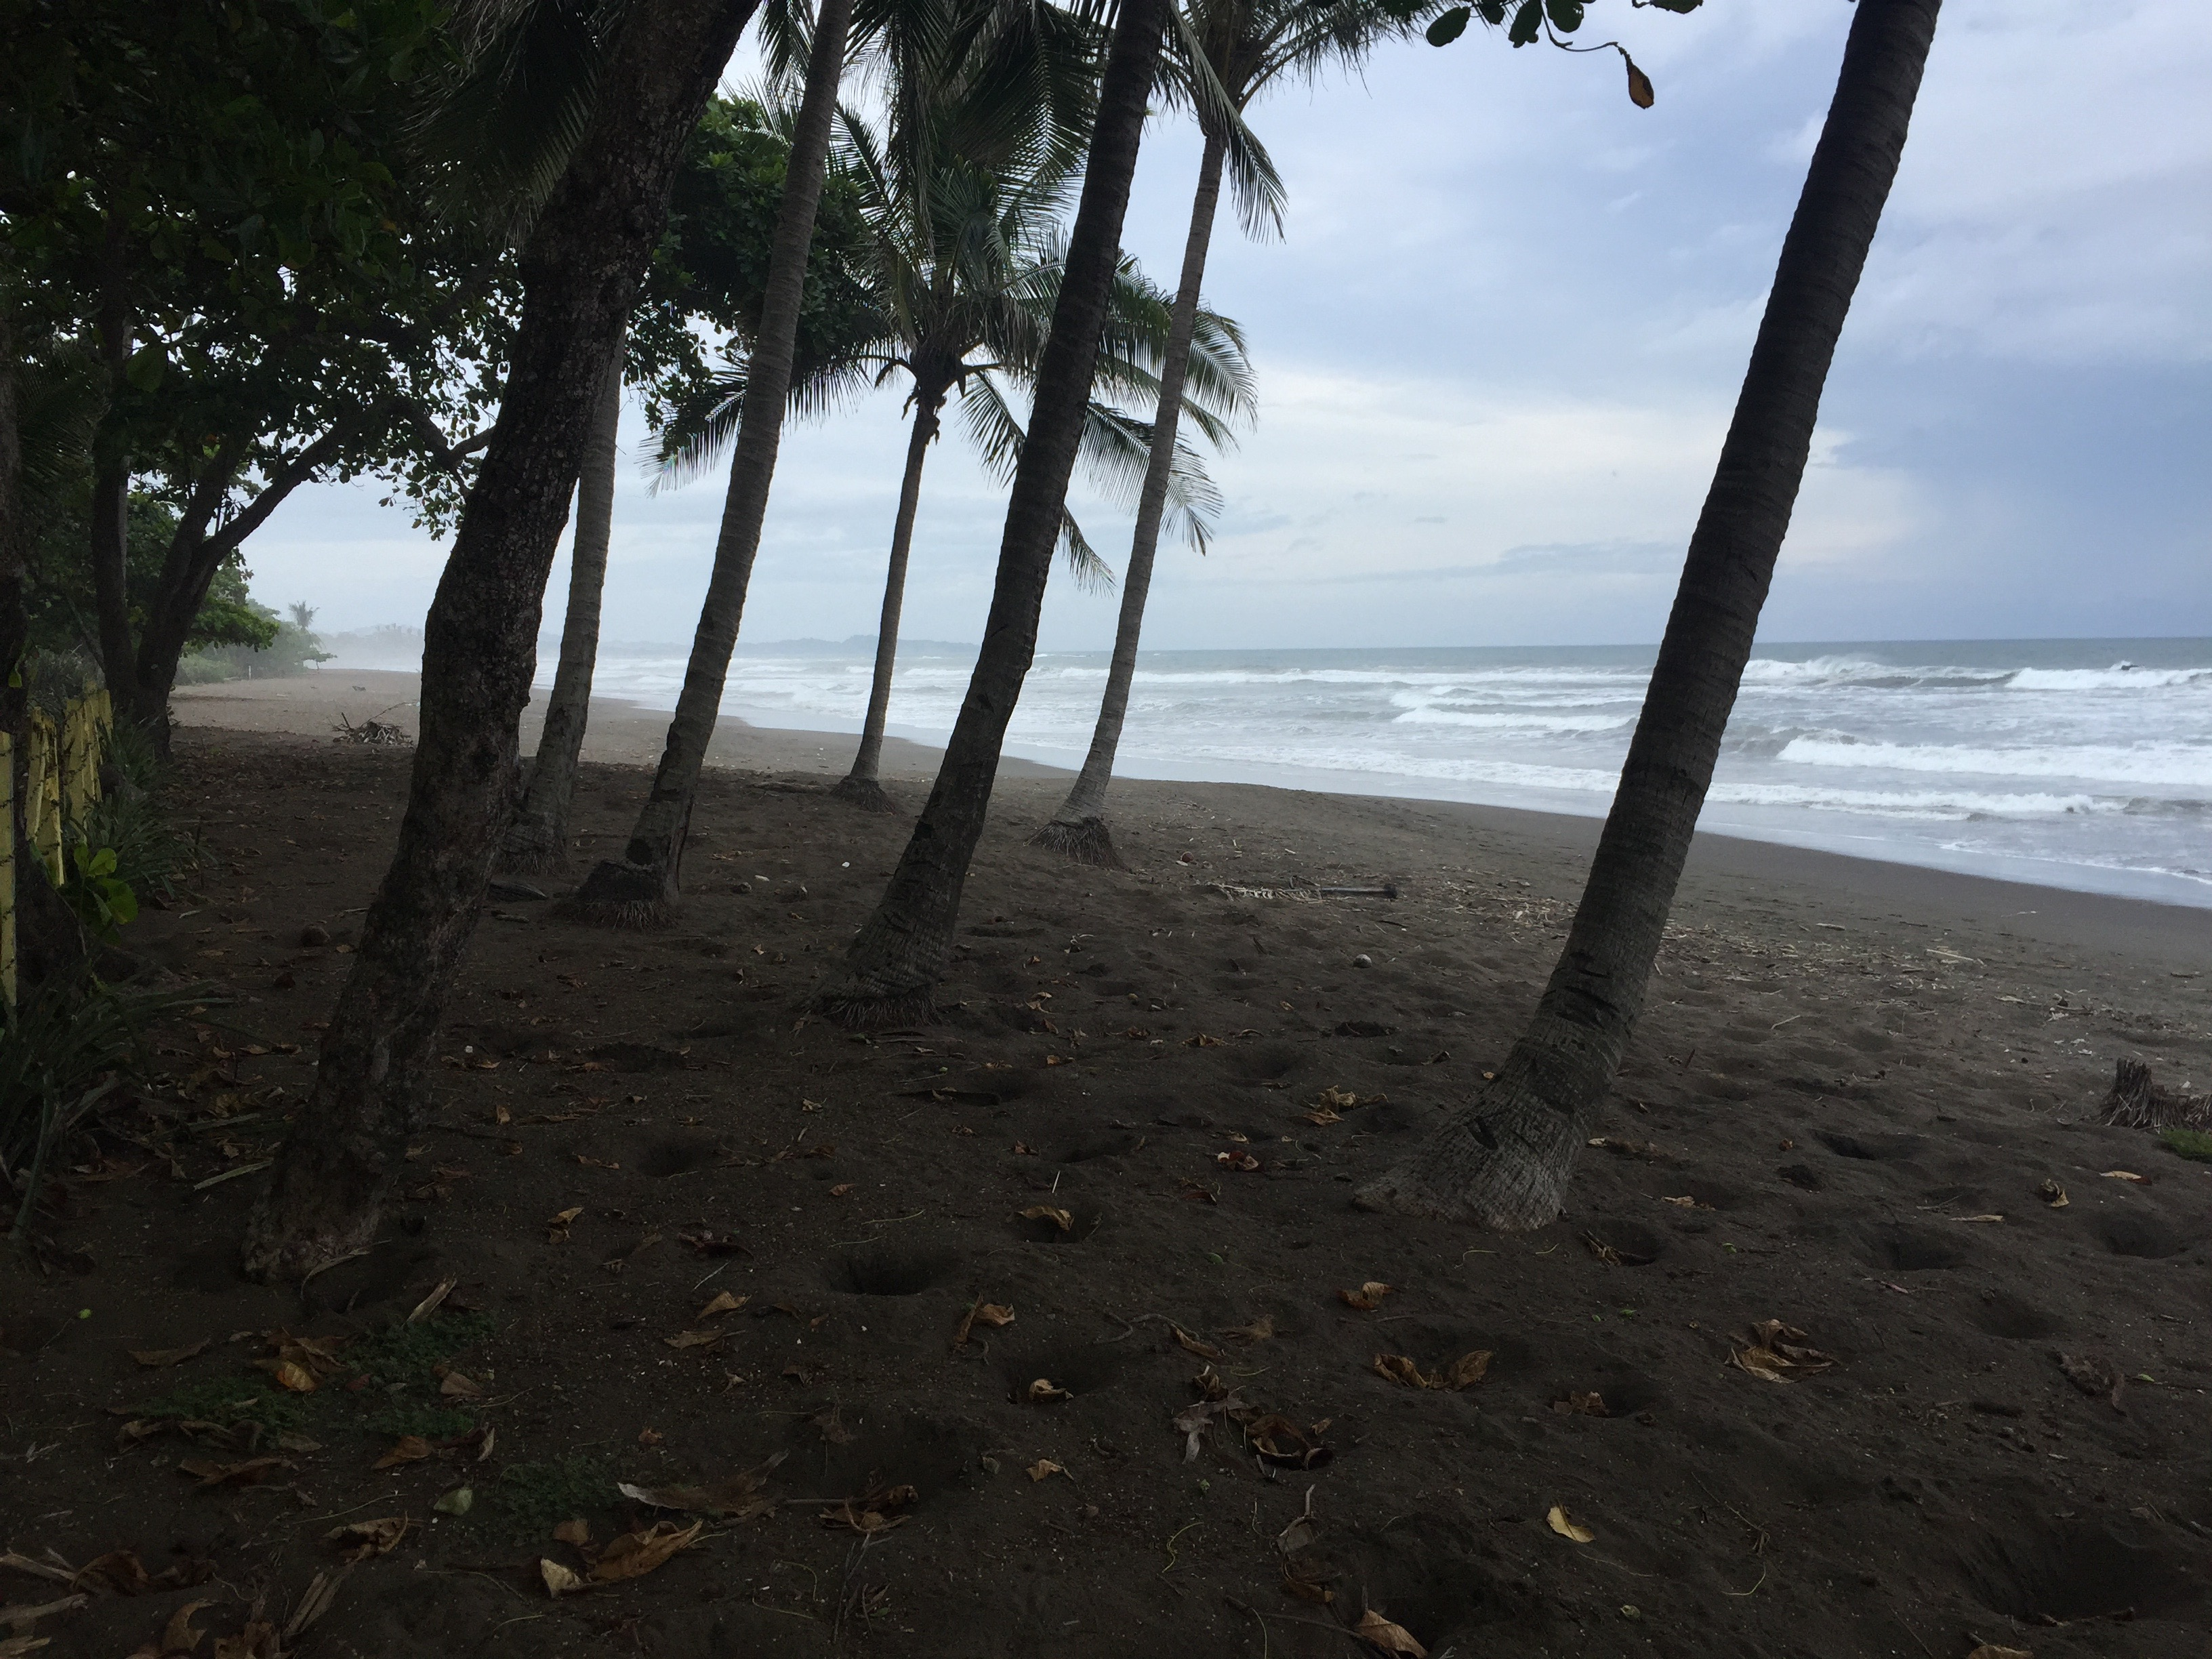 Palm trees line a black sand beach in Costa Rica.